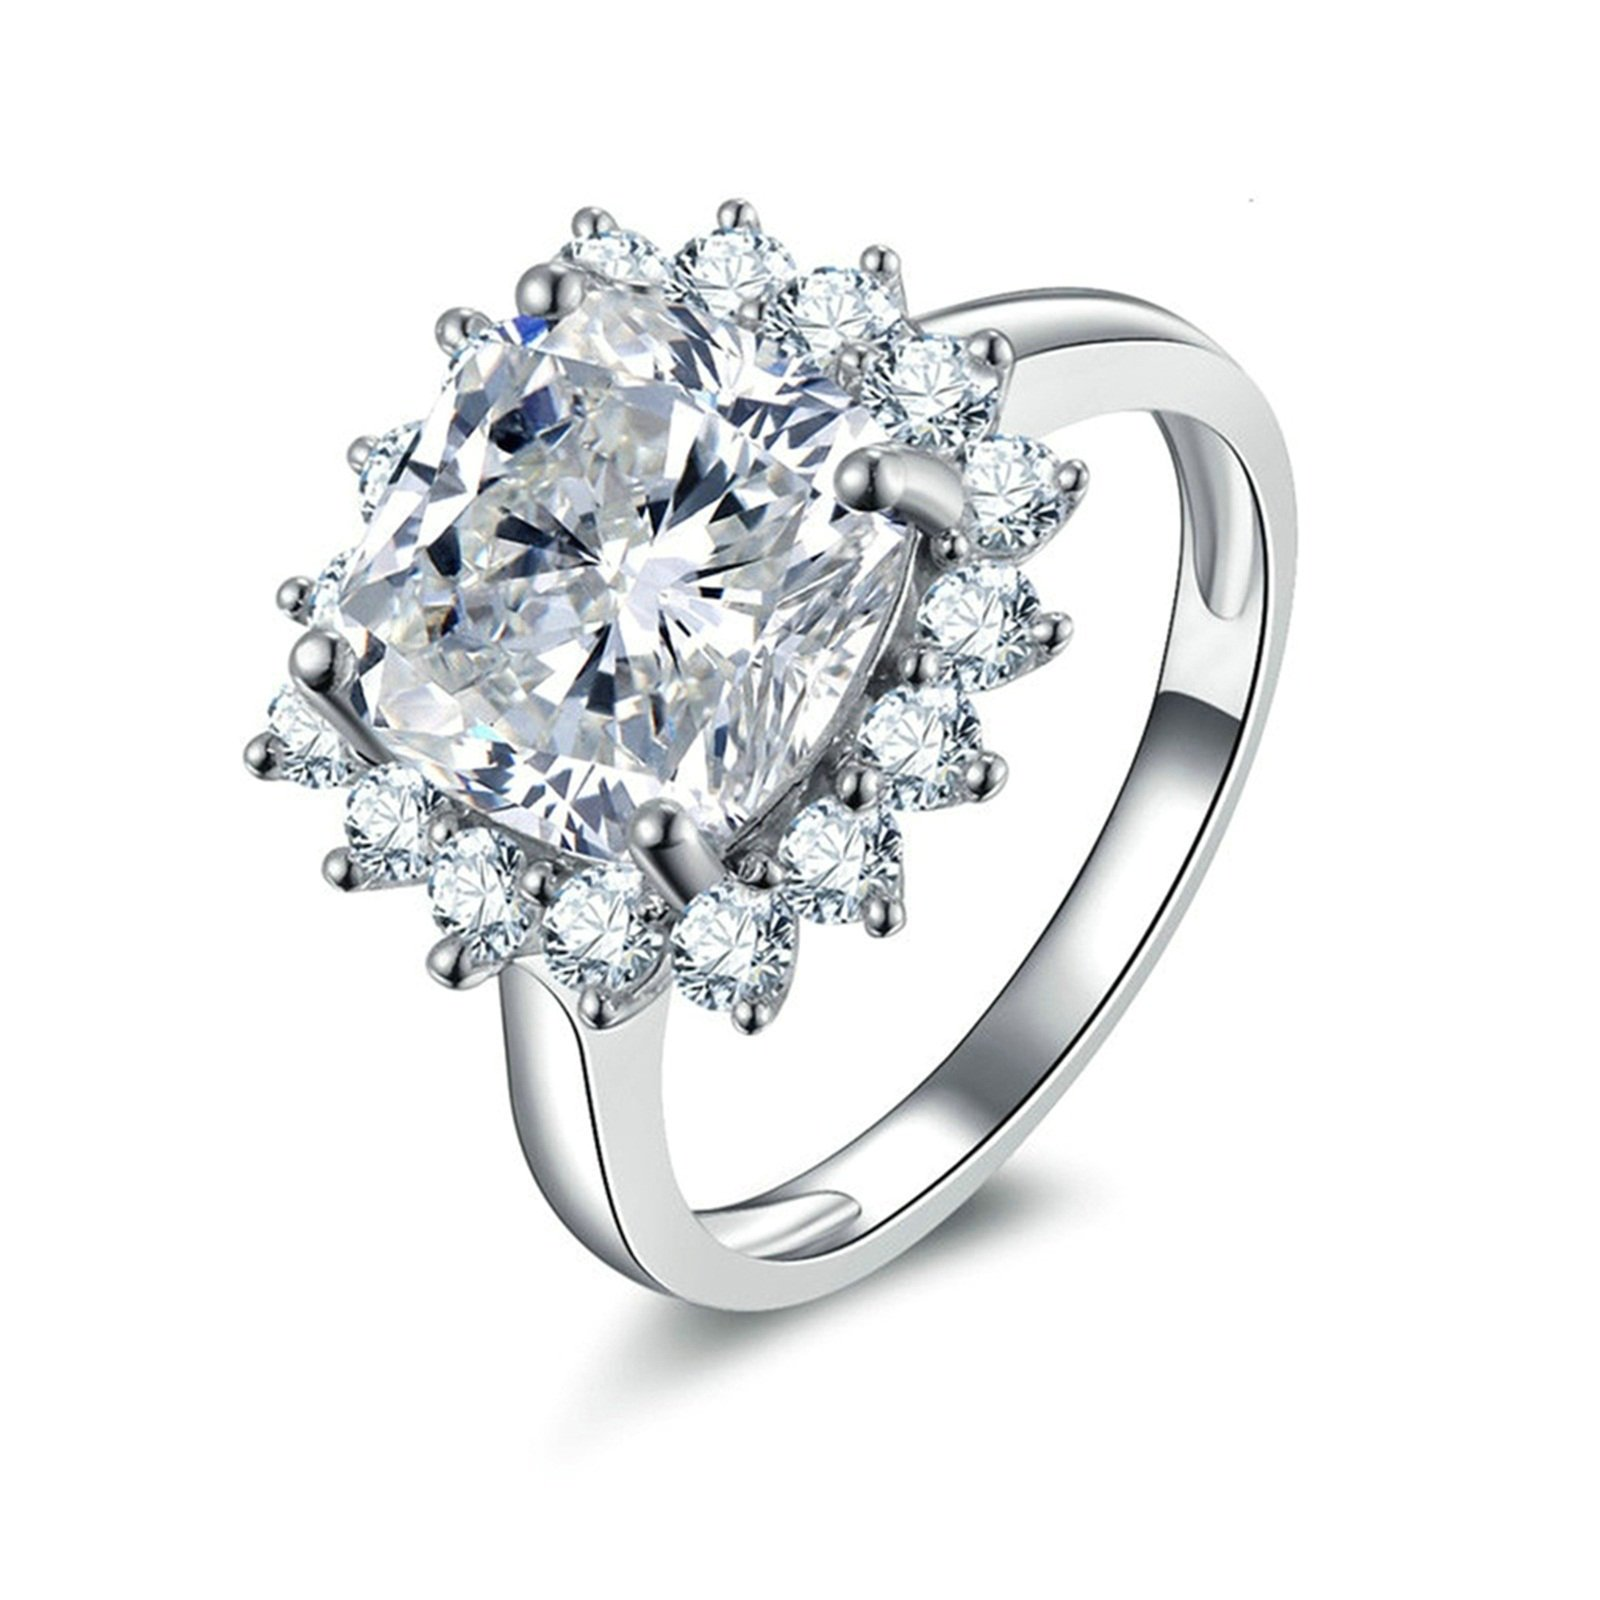 Daesar Promise Rings for Her Customize Cushion & Round Cut Cubic Zirconia Ring Size 9.5